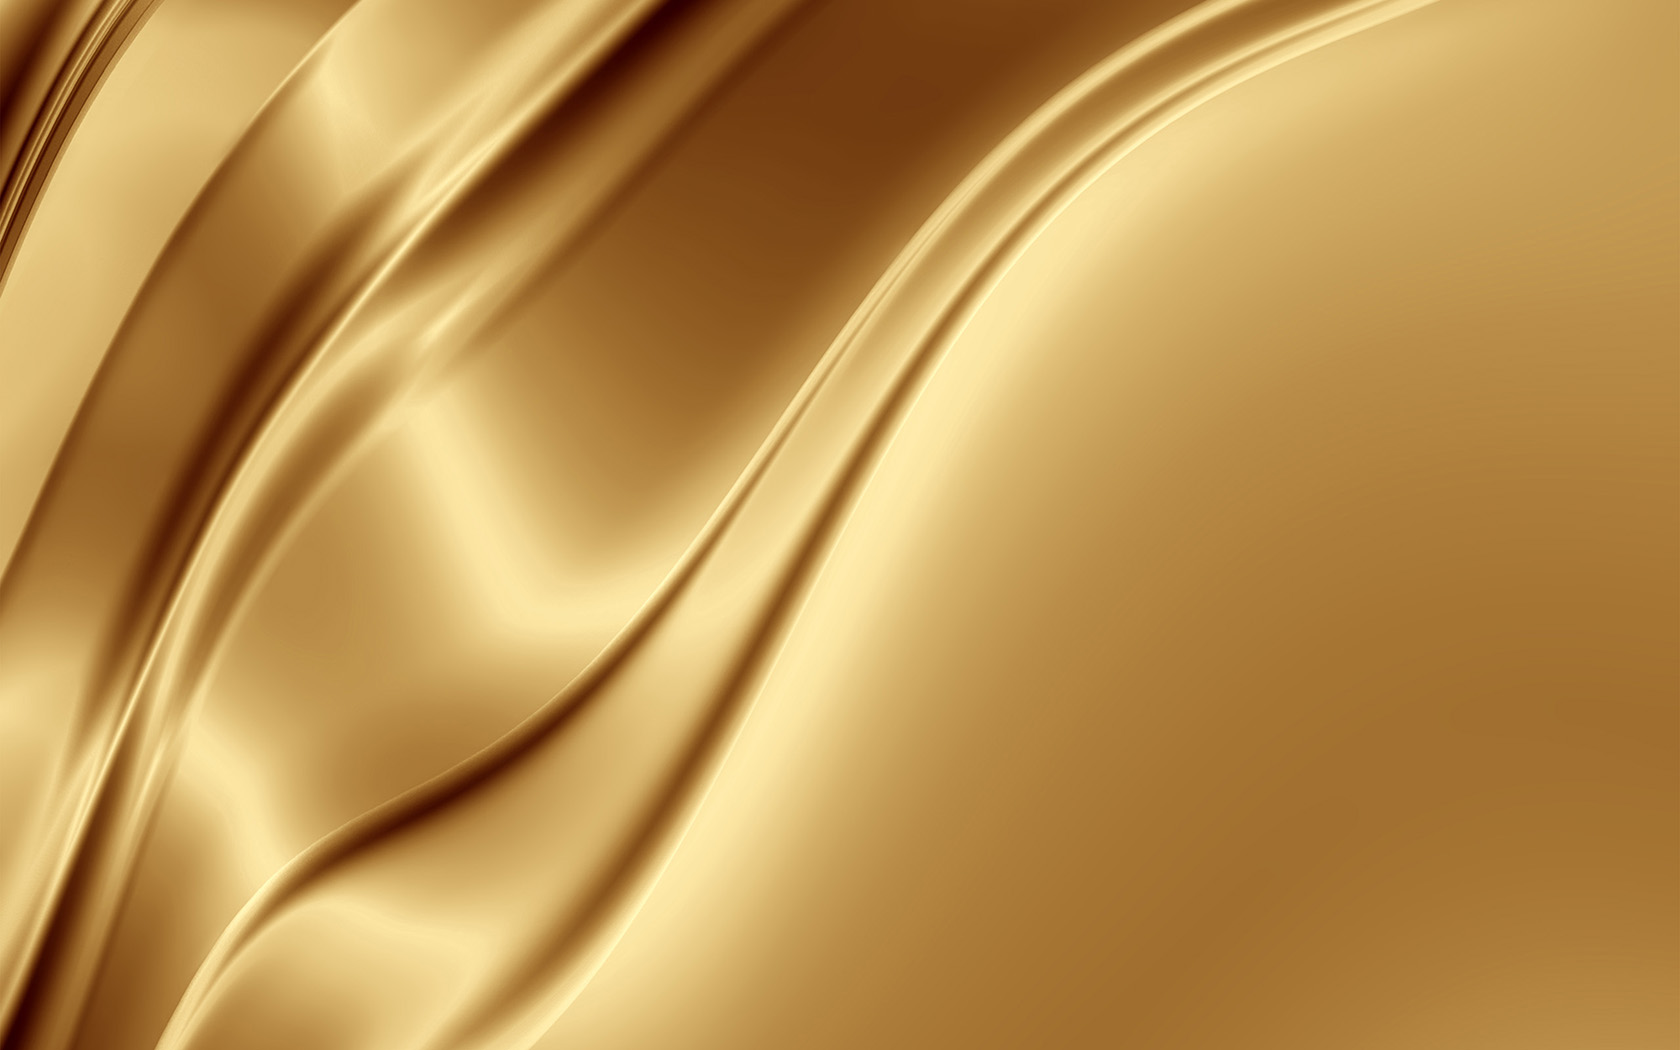 Car Wallpapers Iphone 7 Plus Vo86 Texture Slik Soft Gold Galaxy Pattern Wallpaper